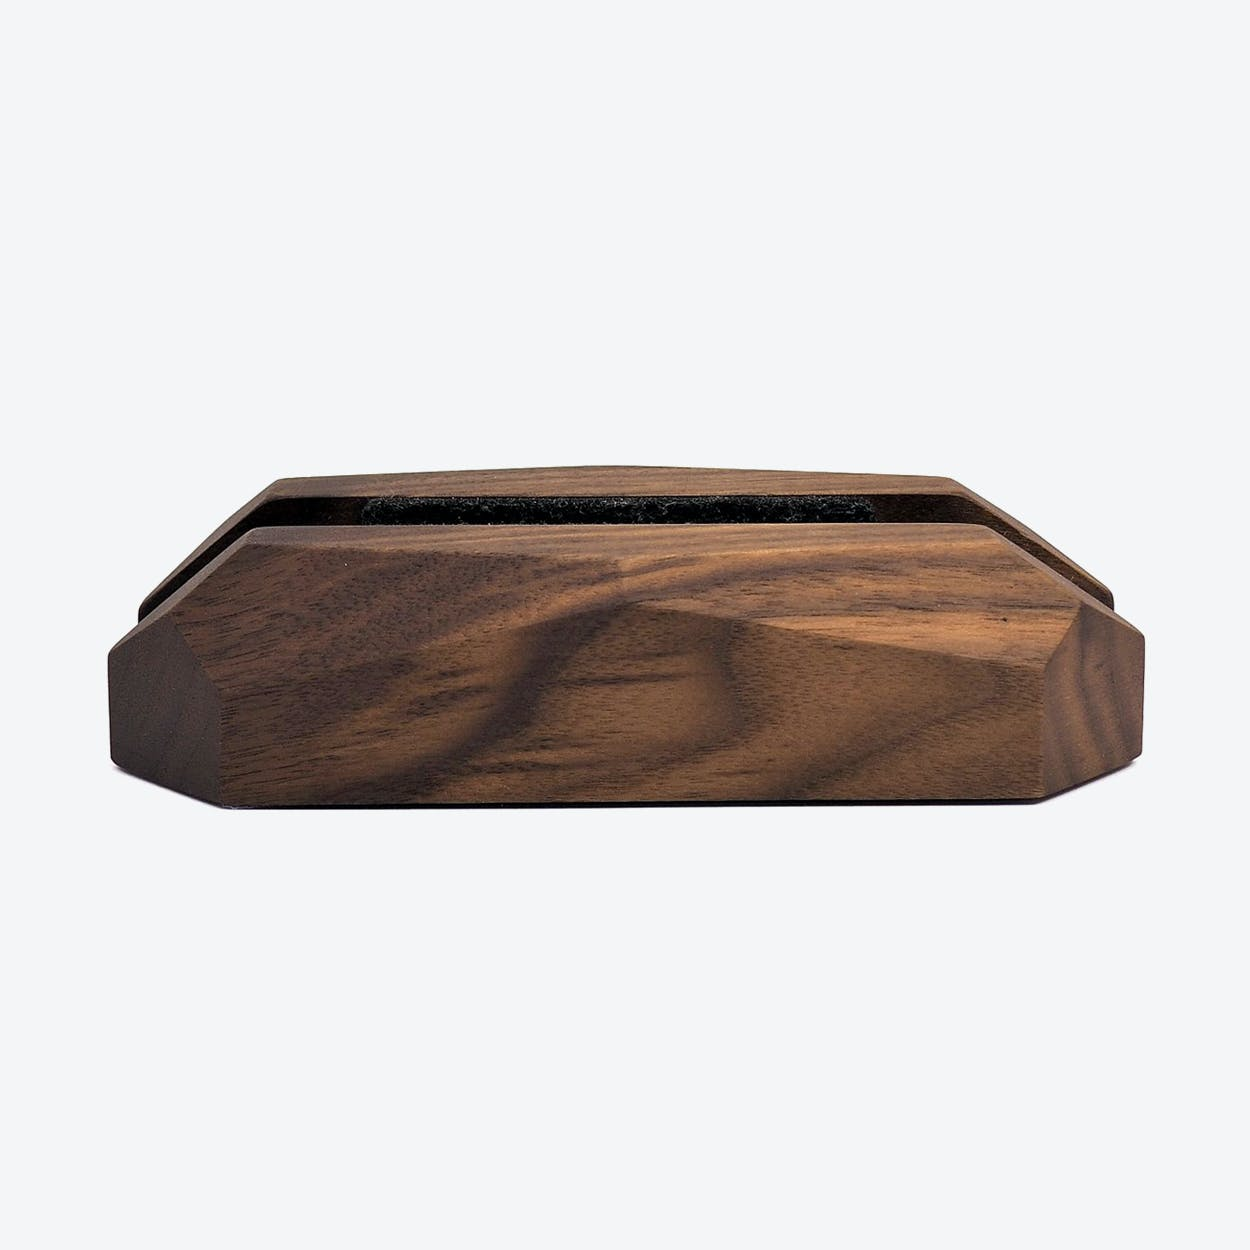 Walnut MacBook Dock